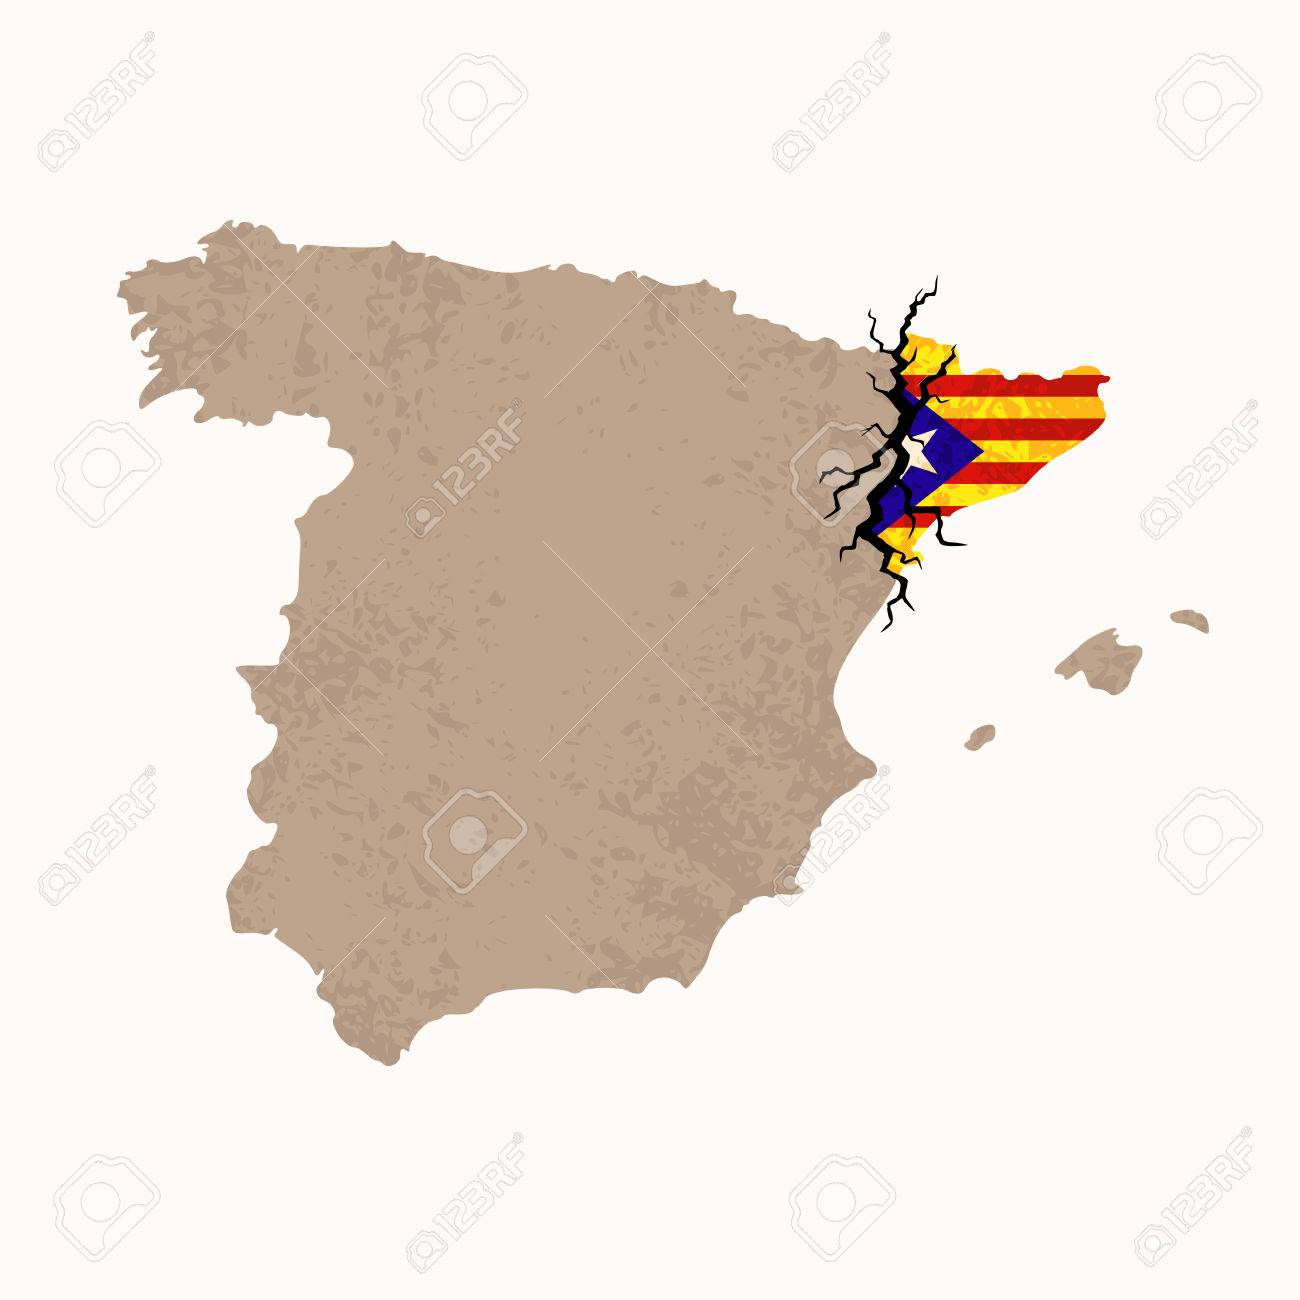 Outline Map Of Spain And Catalonia With Black Crack Illustration